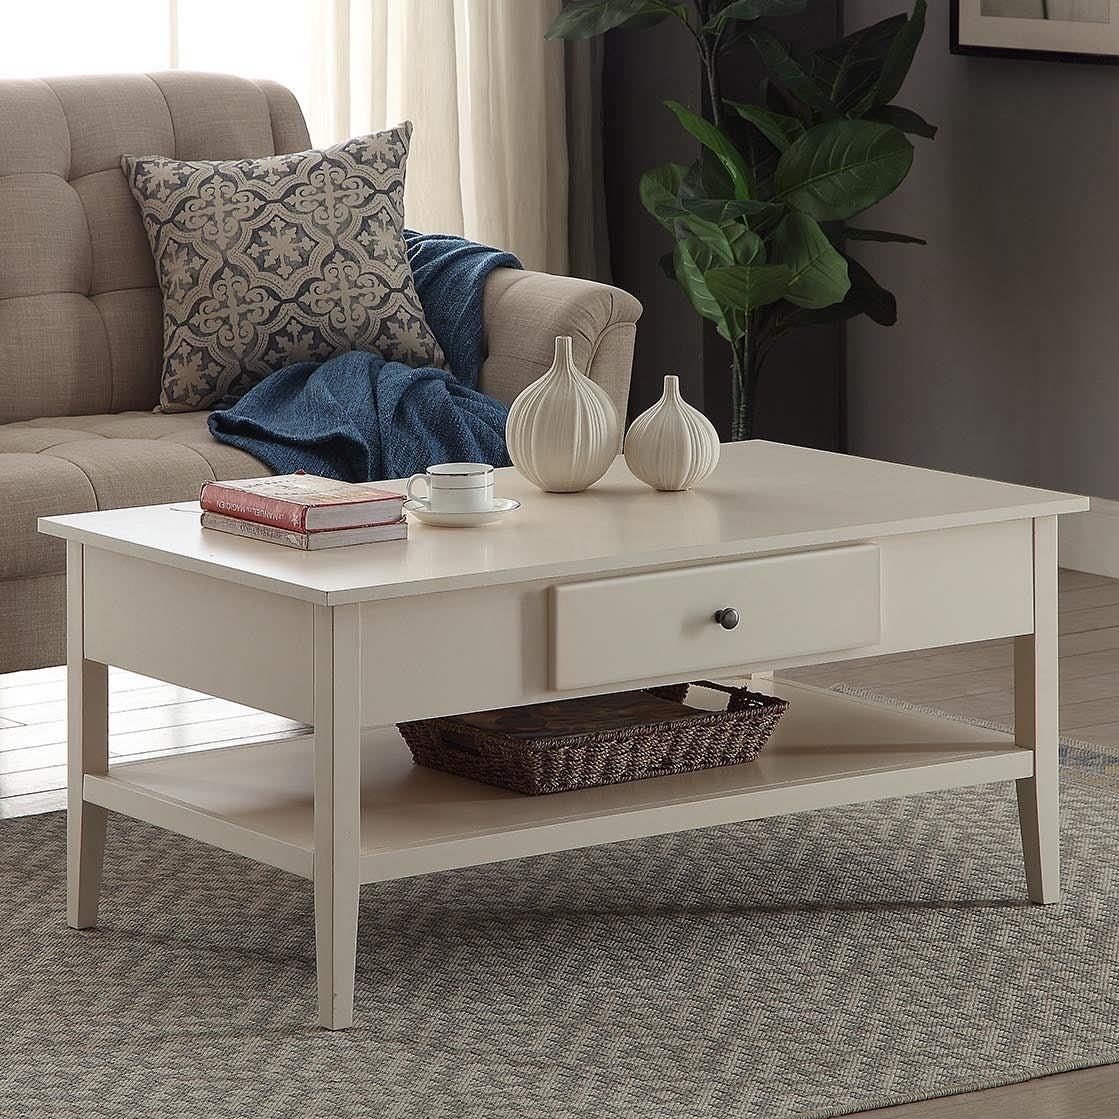 Briarwood Home Decor Wood 42-inch Coffee Table (White - W...